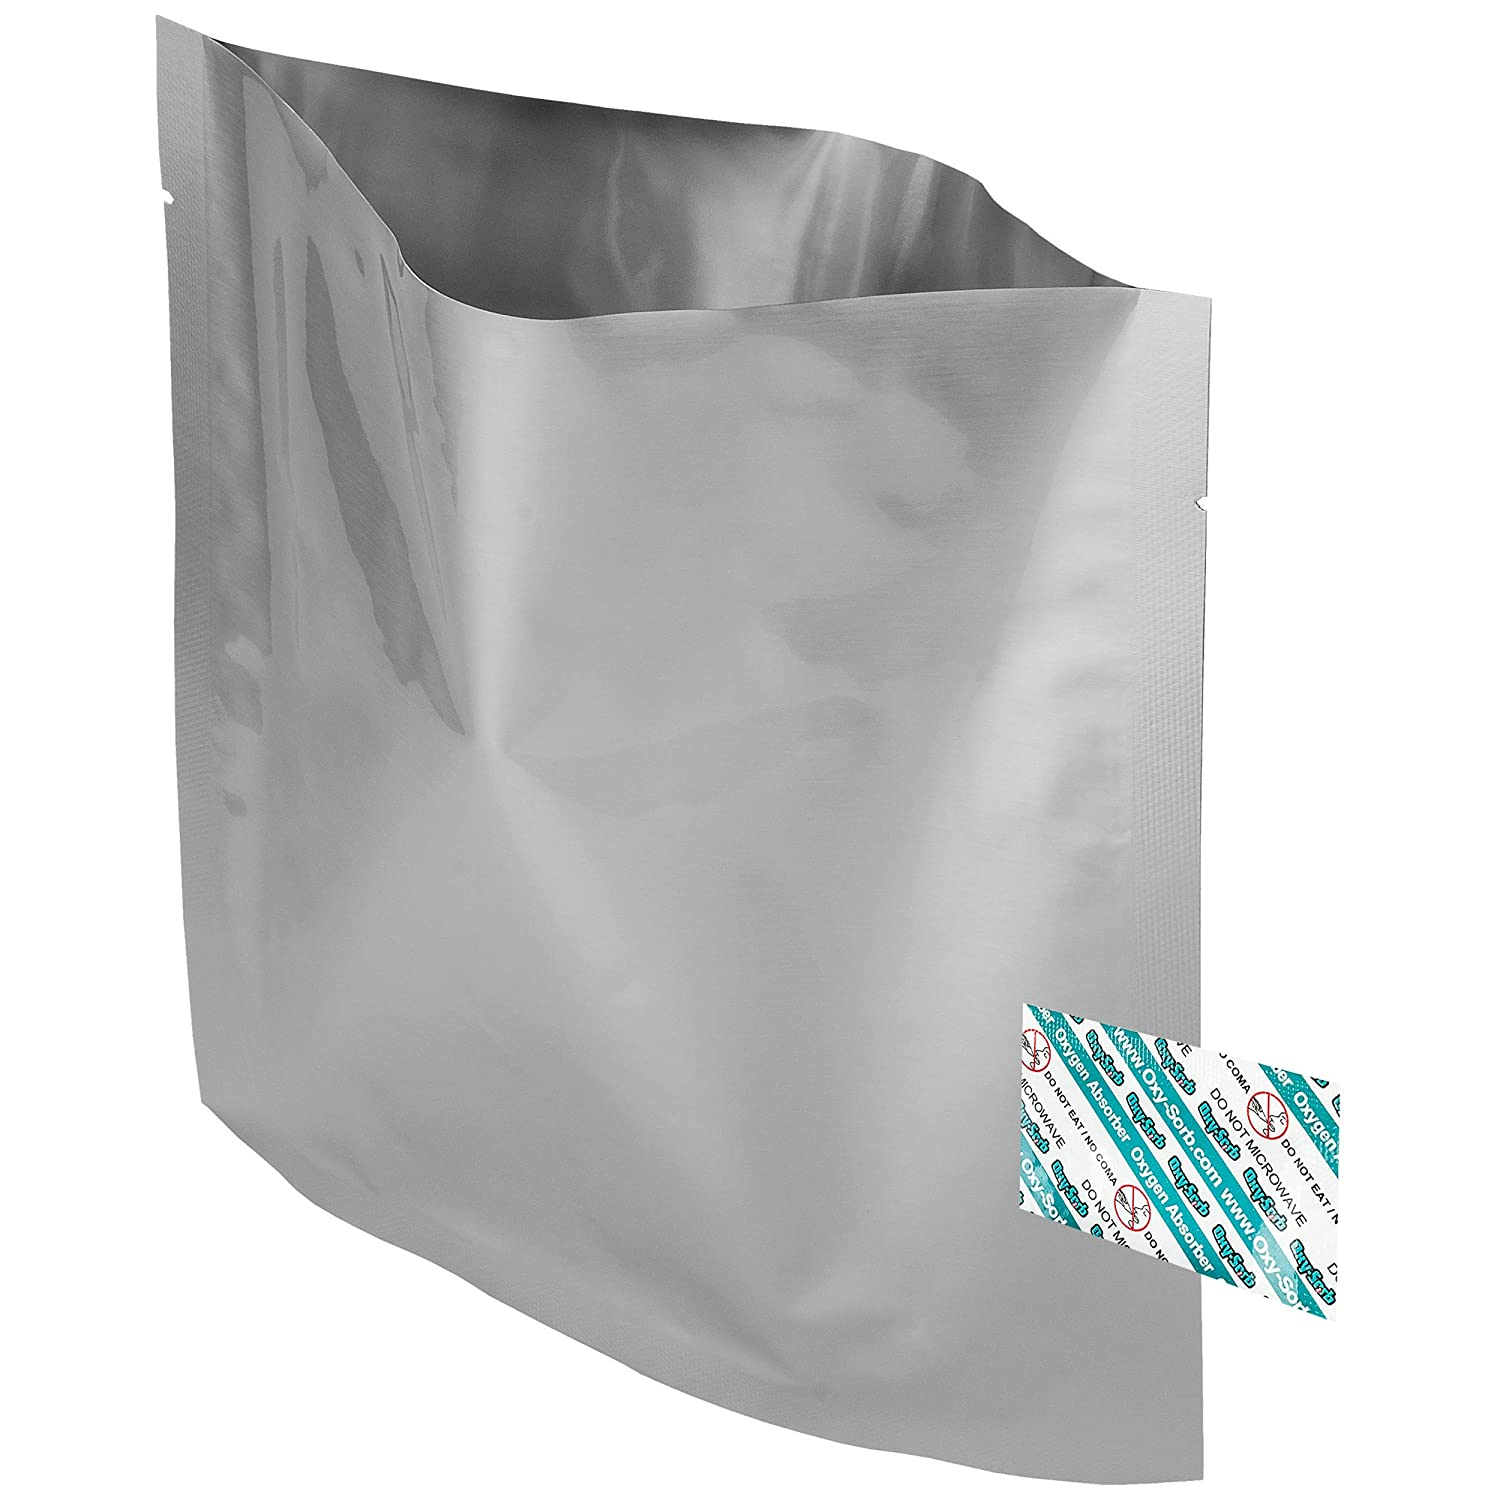 80 - 1 Quart Mylar Bags & Oxygen Absorbers for Dried Food & Long Term Storage by Dry-Packs!